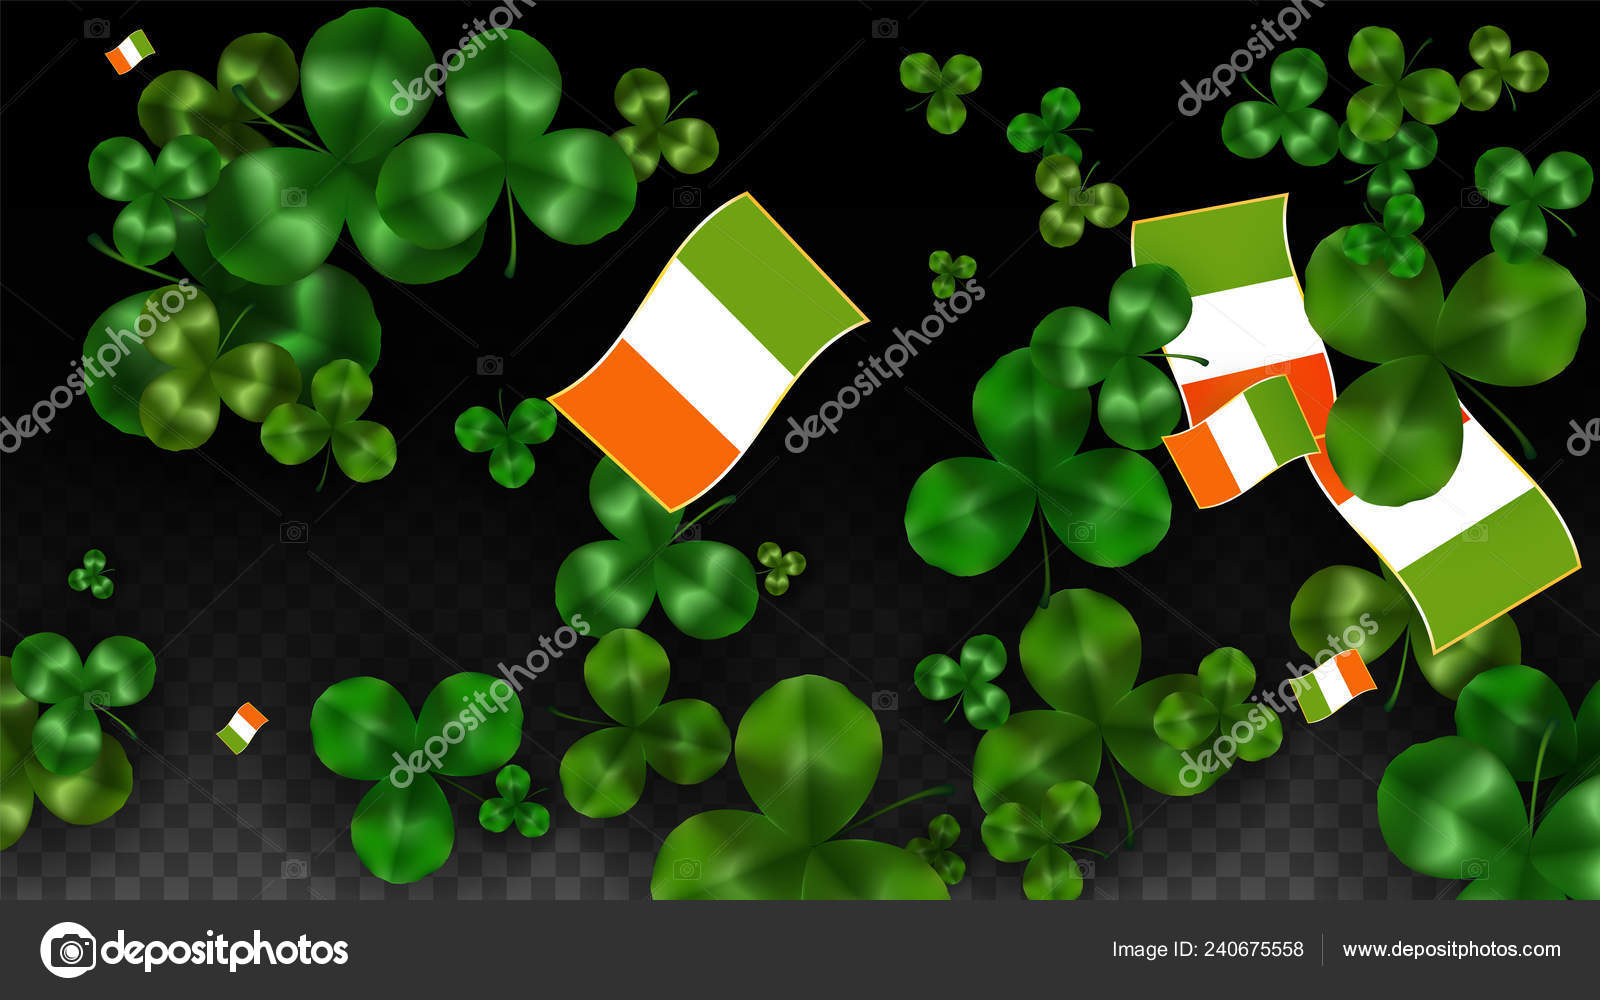 d496752e9661 Vector Clover Leaf and Ireland Flag Isolated on Transparent Background. St.  Patrick s Day Illustration. Ireland s Lucky Shamrock Poster.